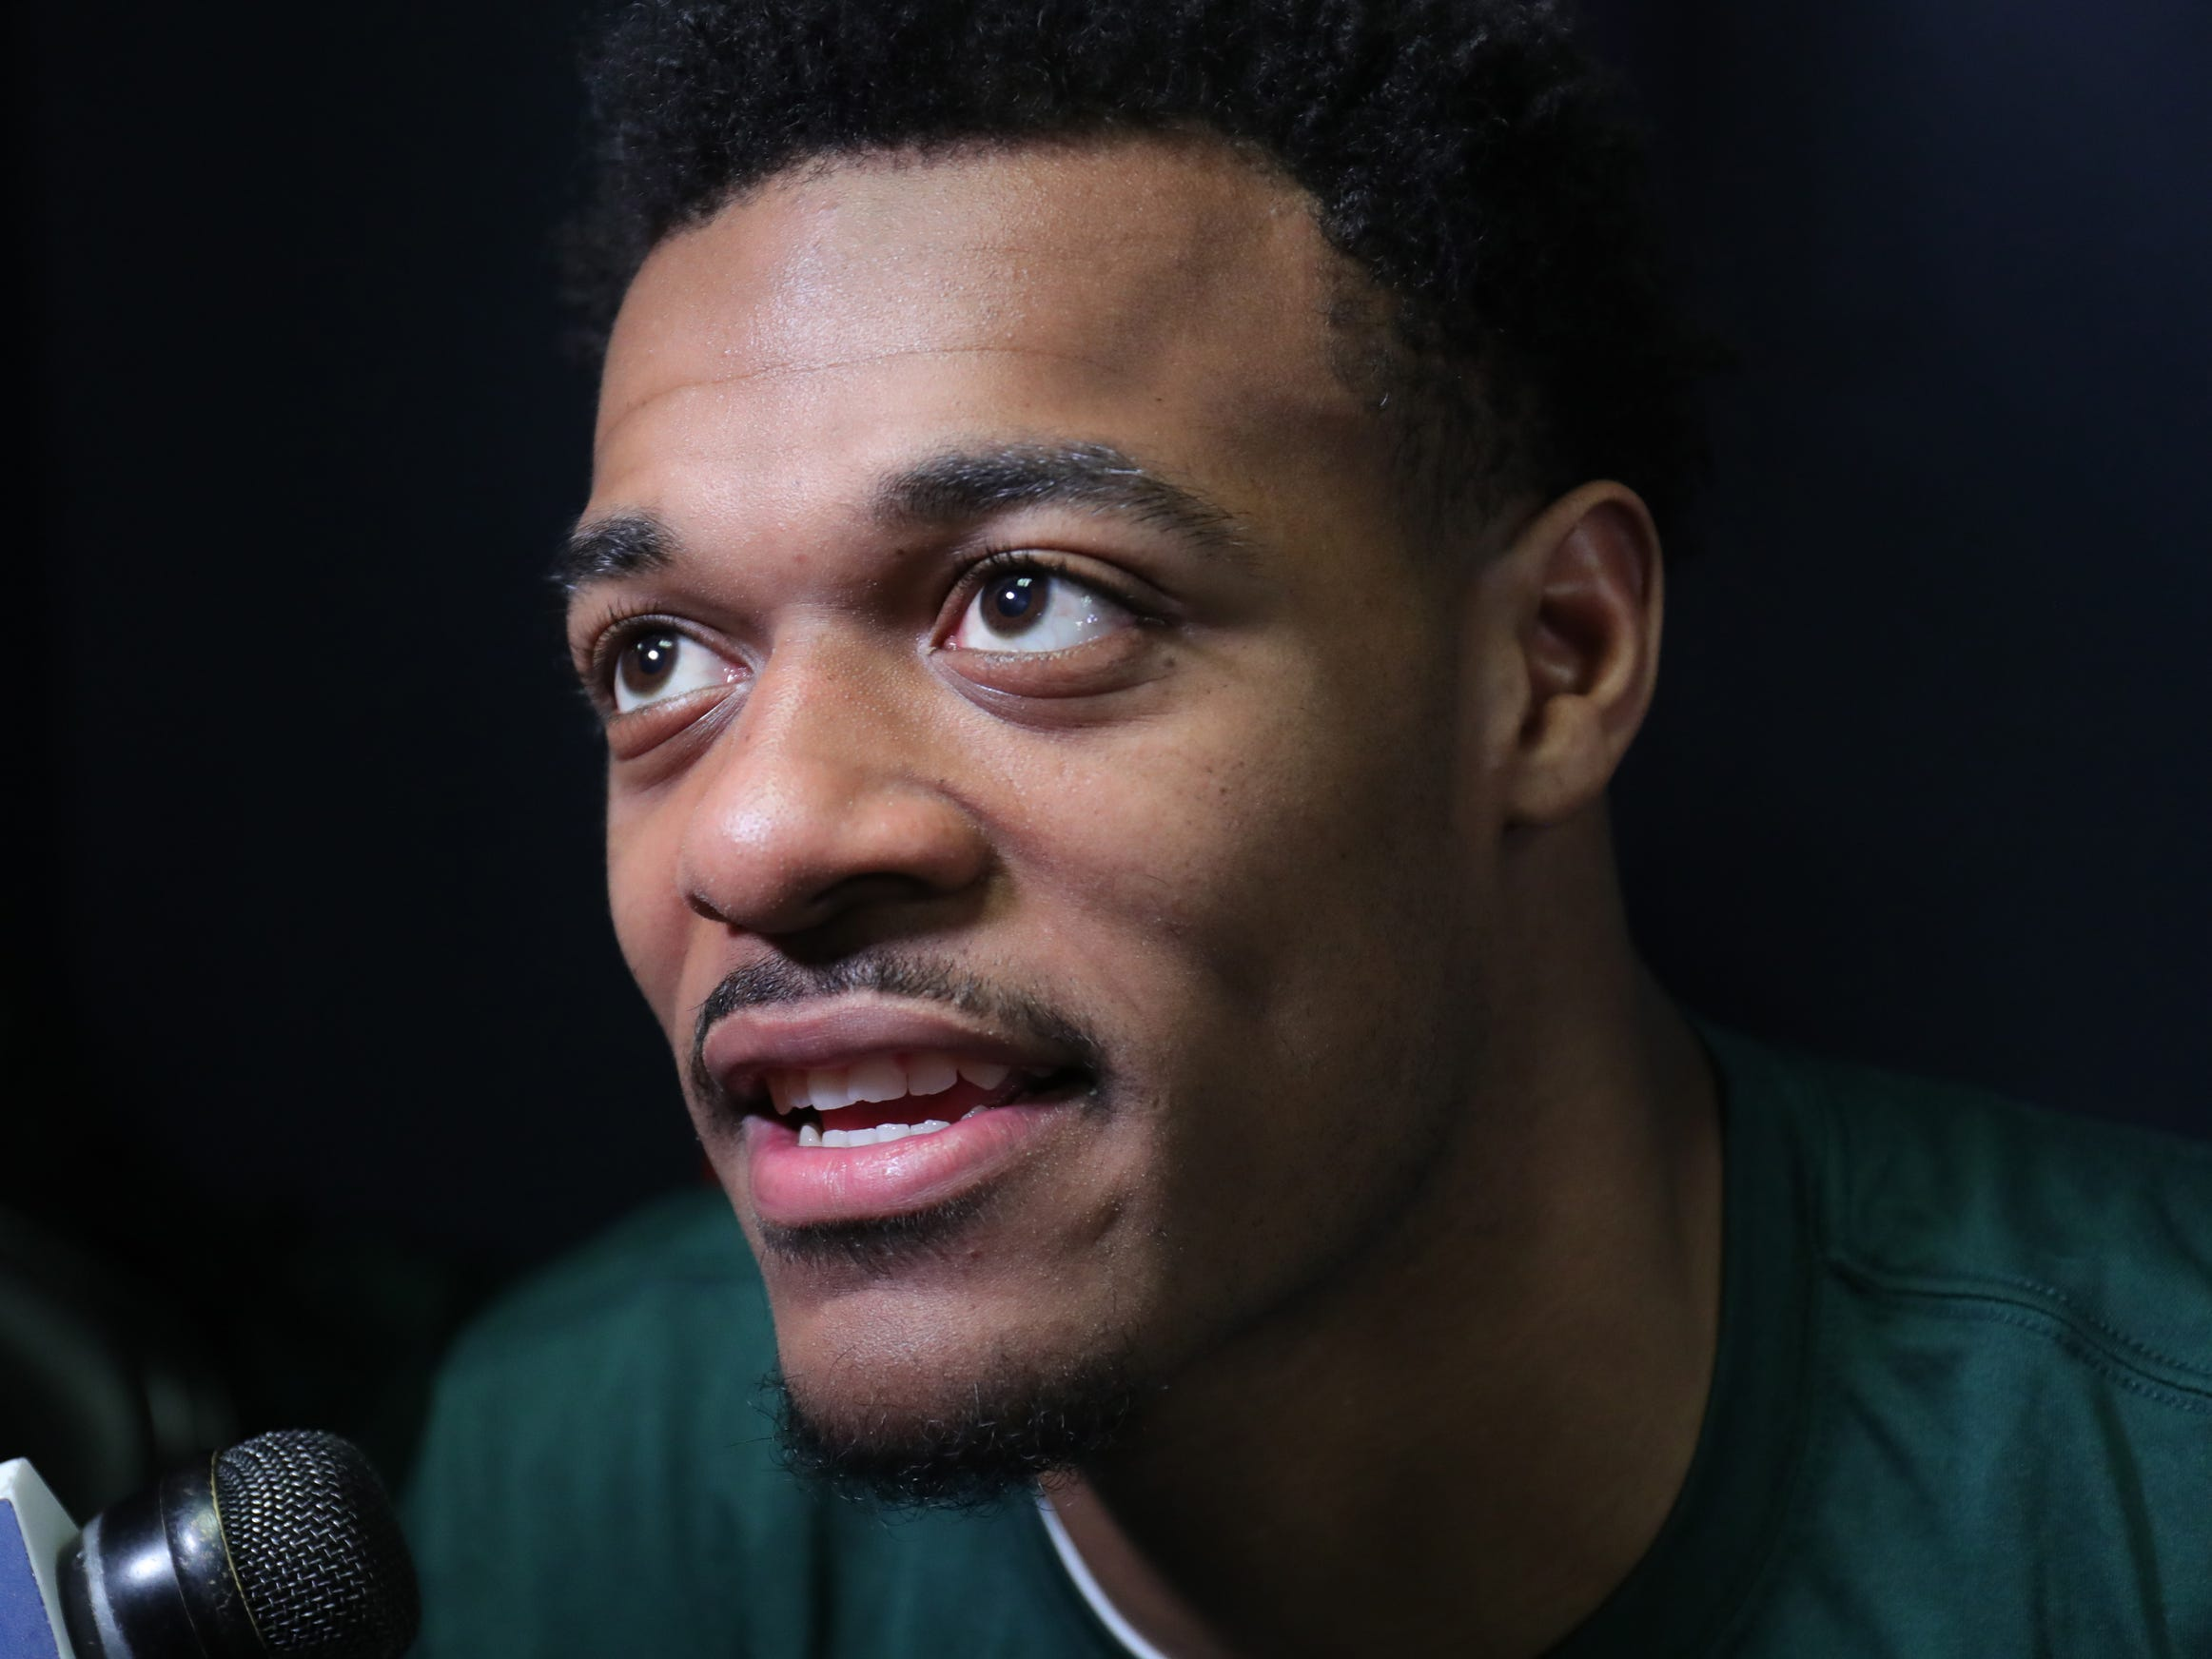 Michigan State forward Xavier Tillman talks with reporters about their Sweet 16 game against LSU, Thursday, March 28, 2019 at the Capital One Arena in Washington, D.C.